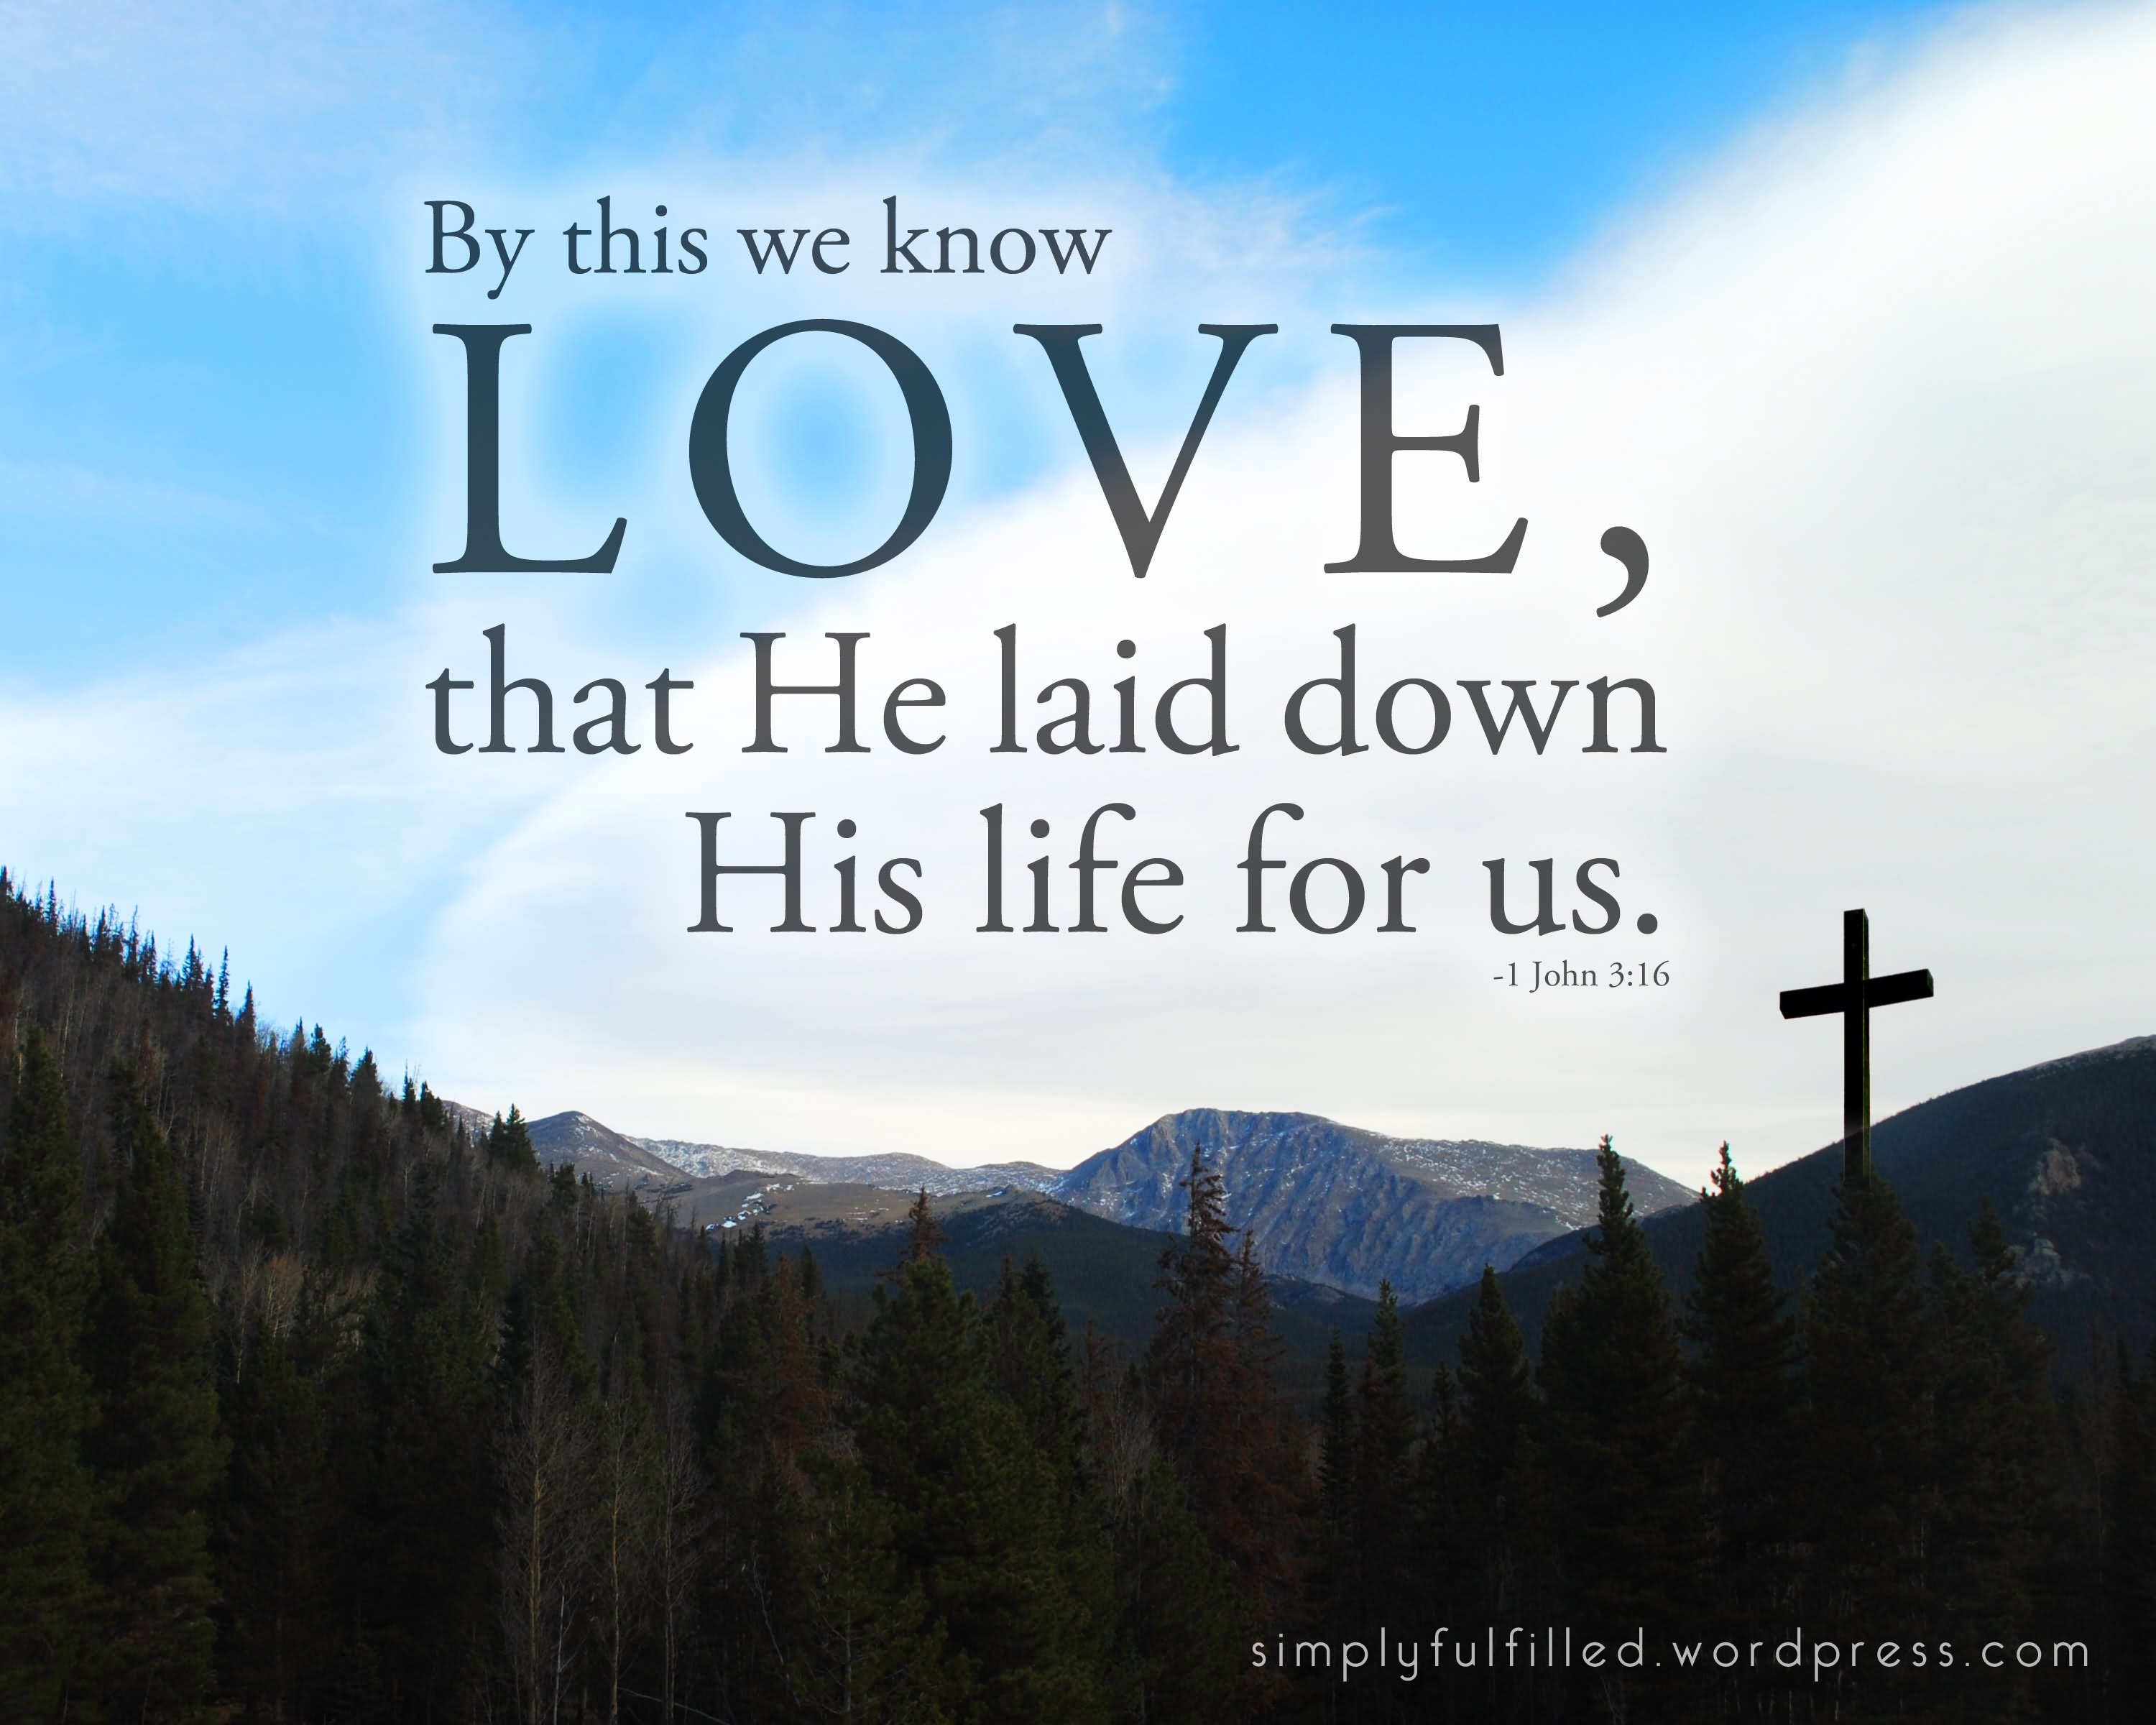 Love Quotes For Us By This We Know Love That He Laid Down His Life For Us Good